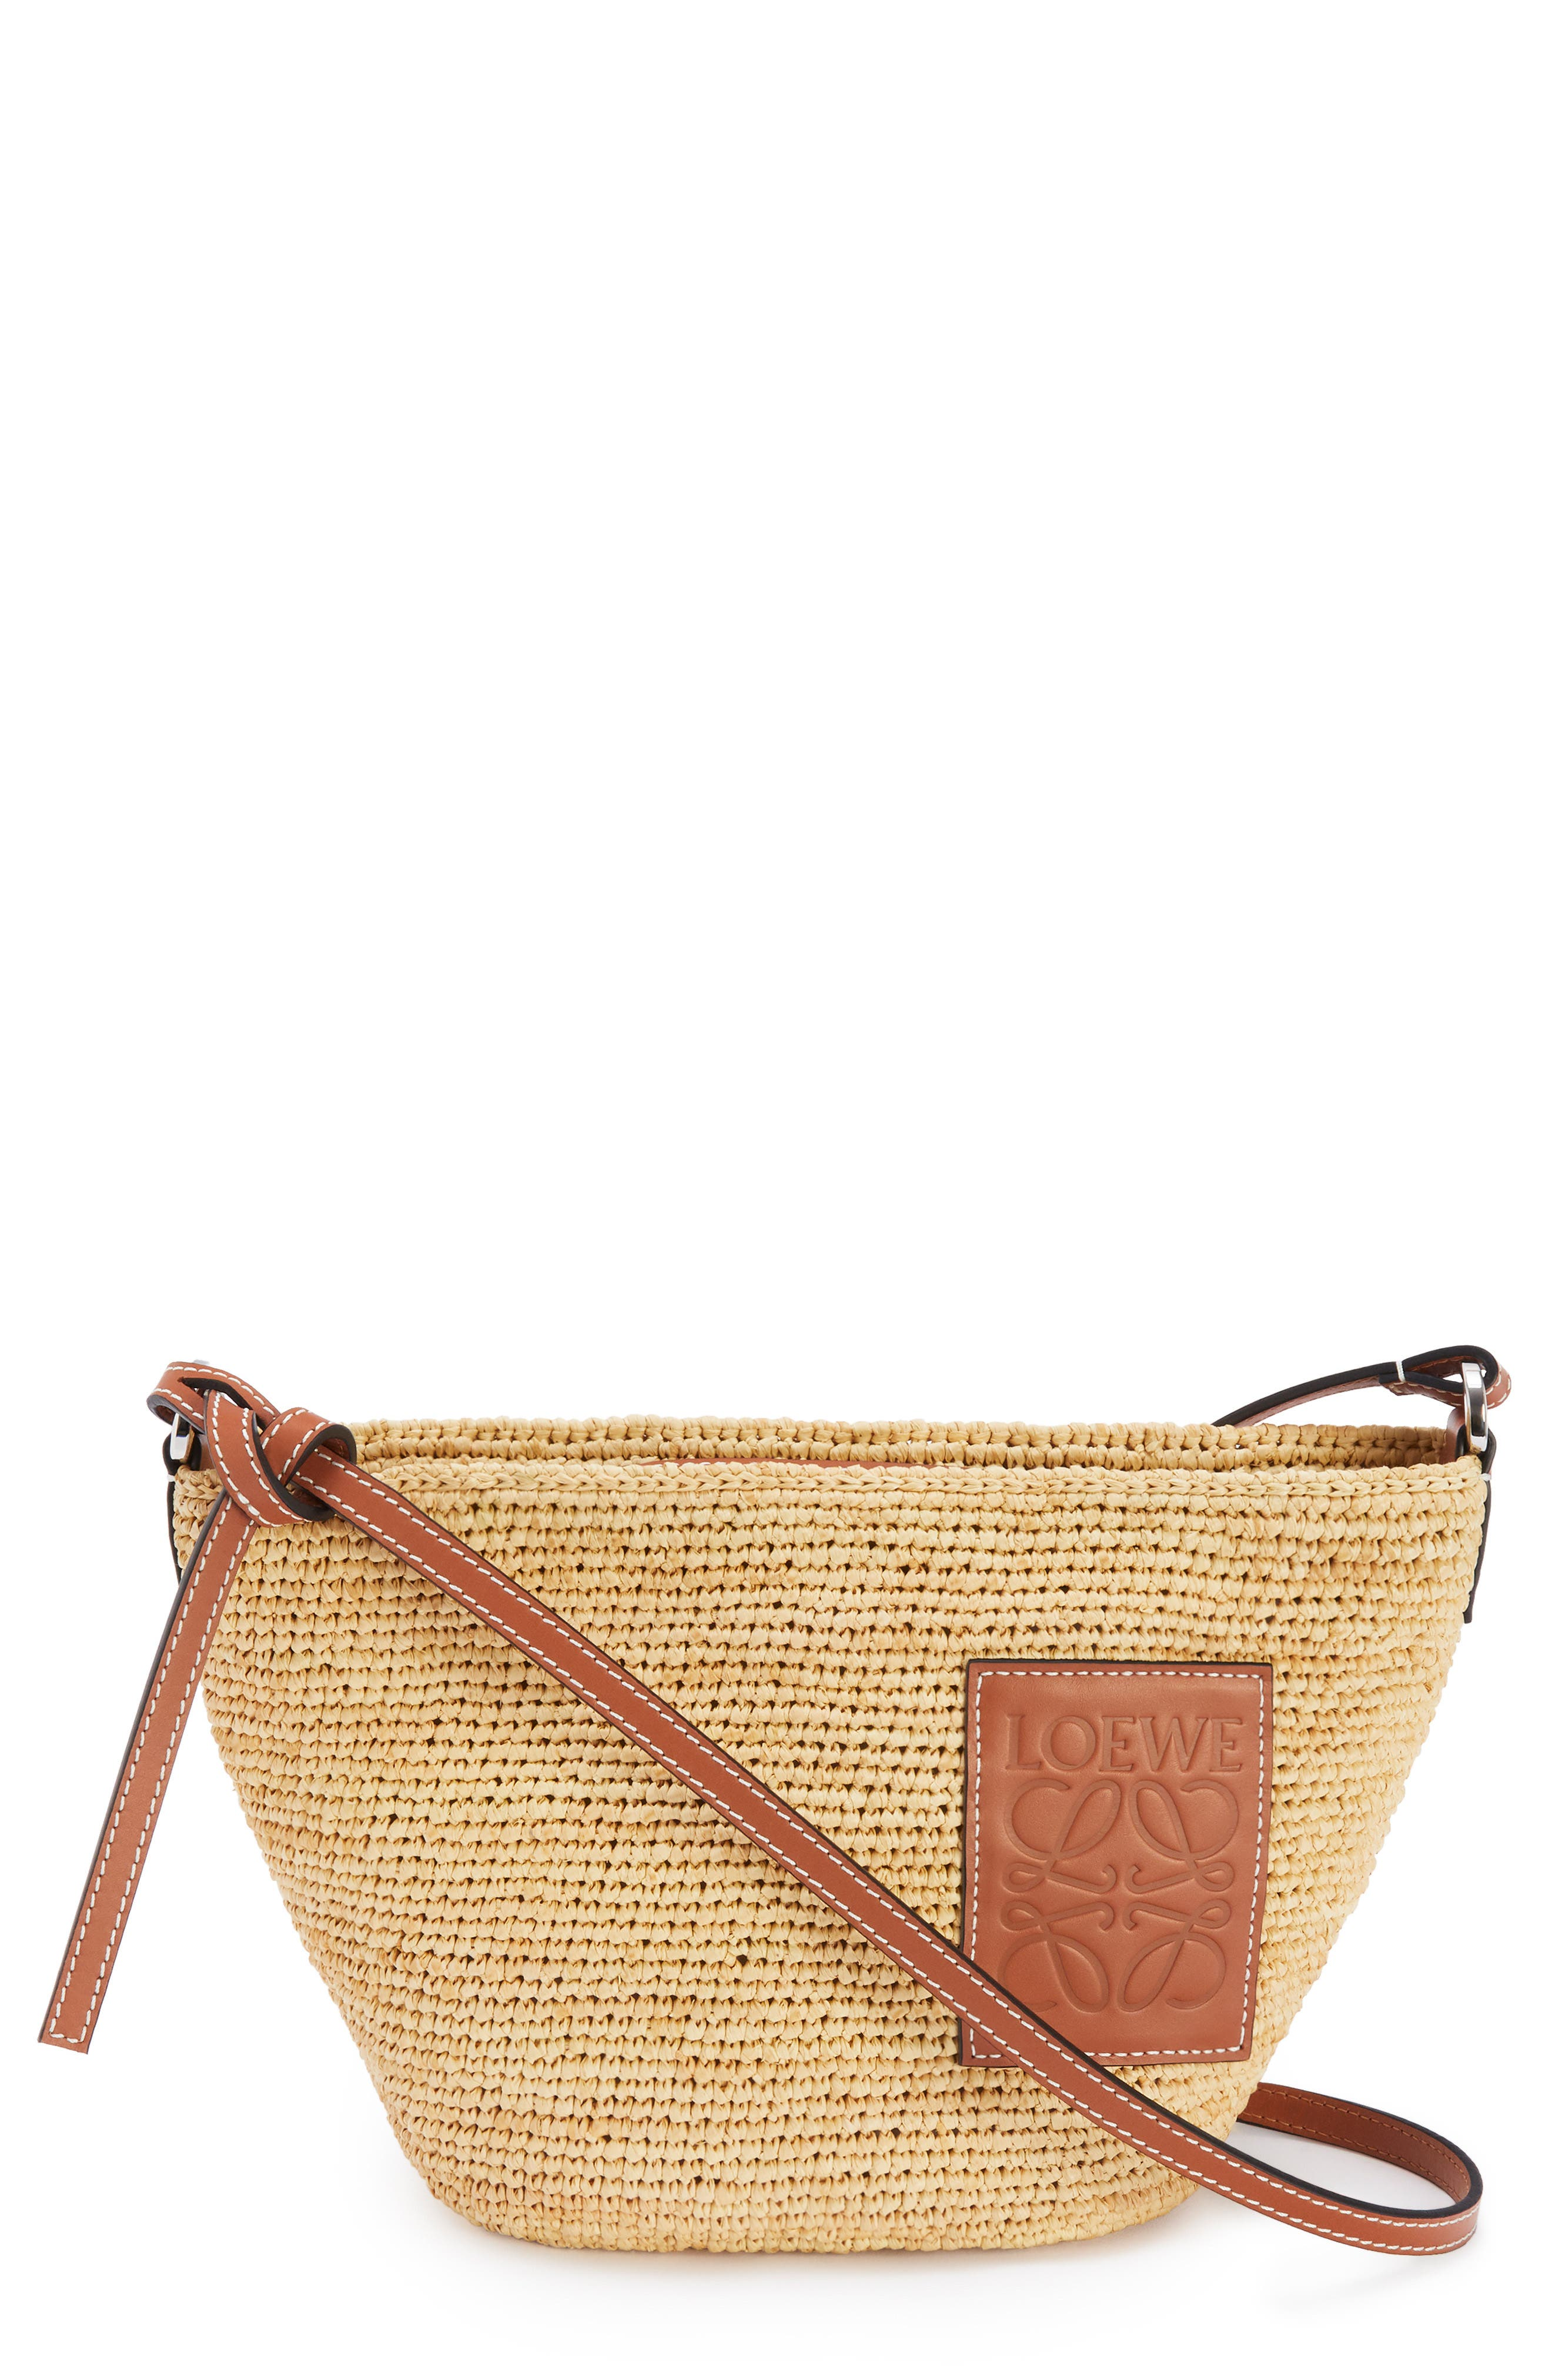 Rattan Clutch bag with Floral Designs Natural Brown clutch women Bag.